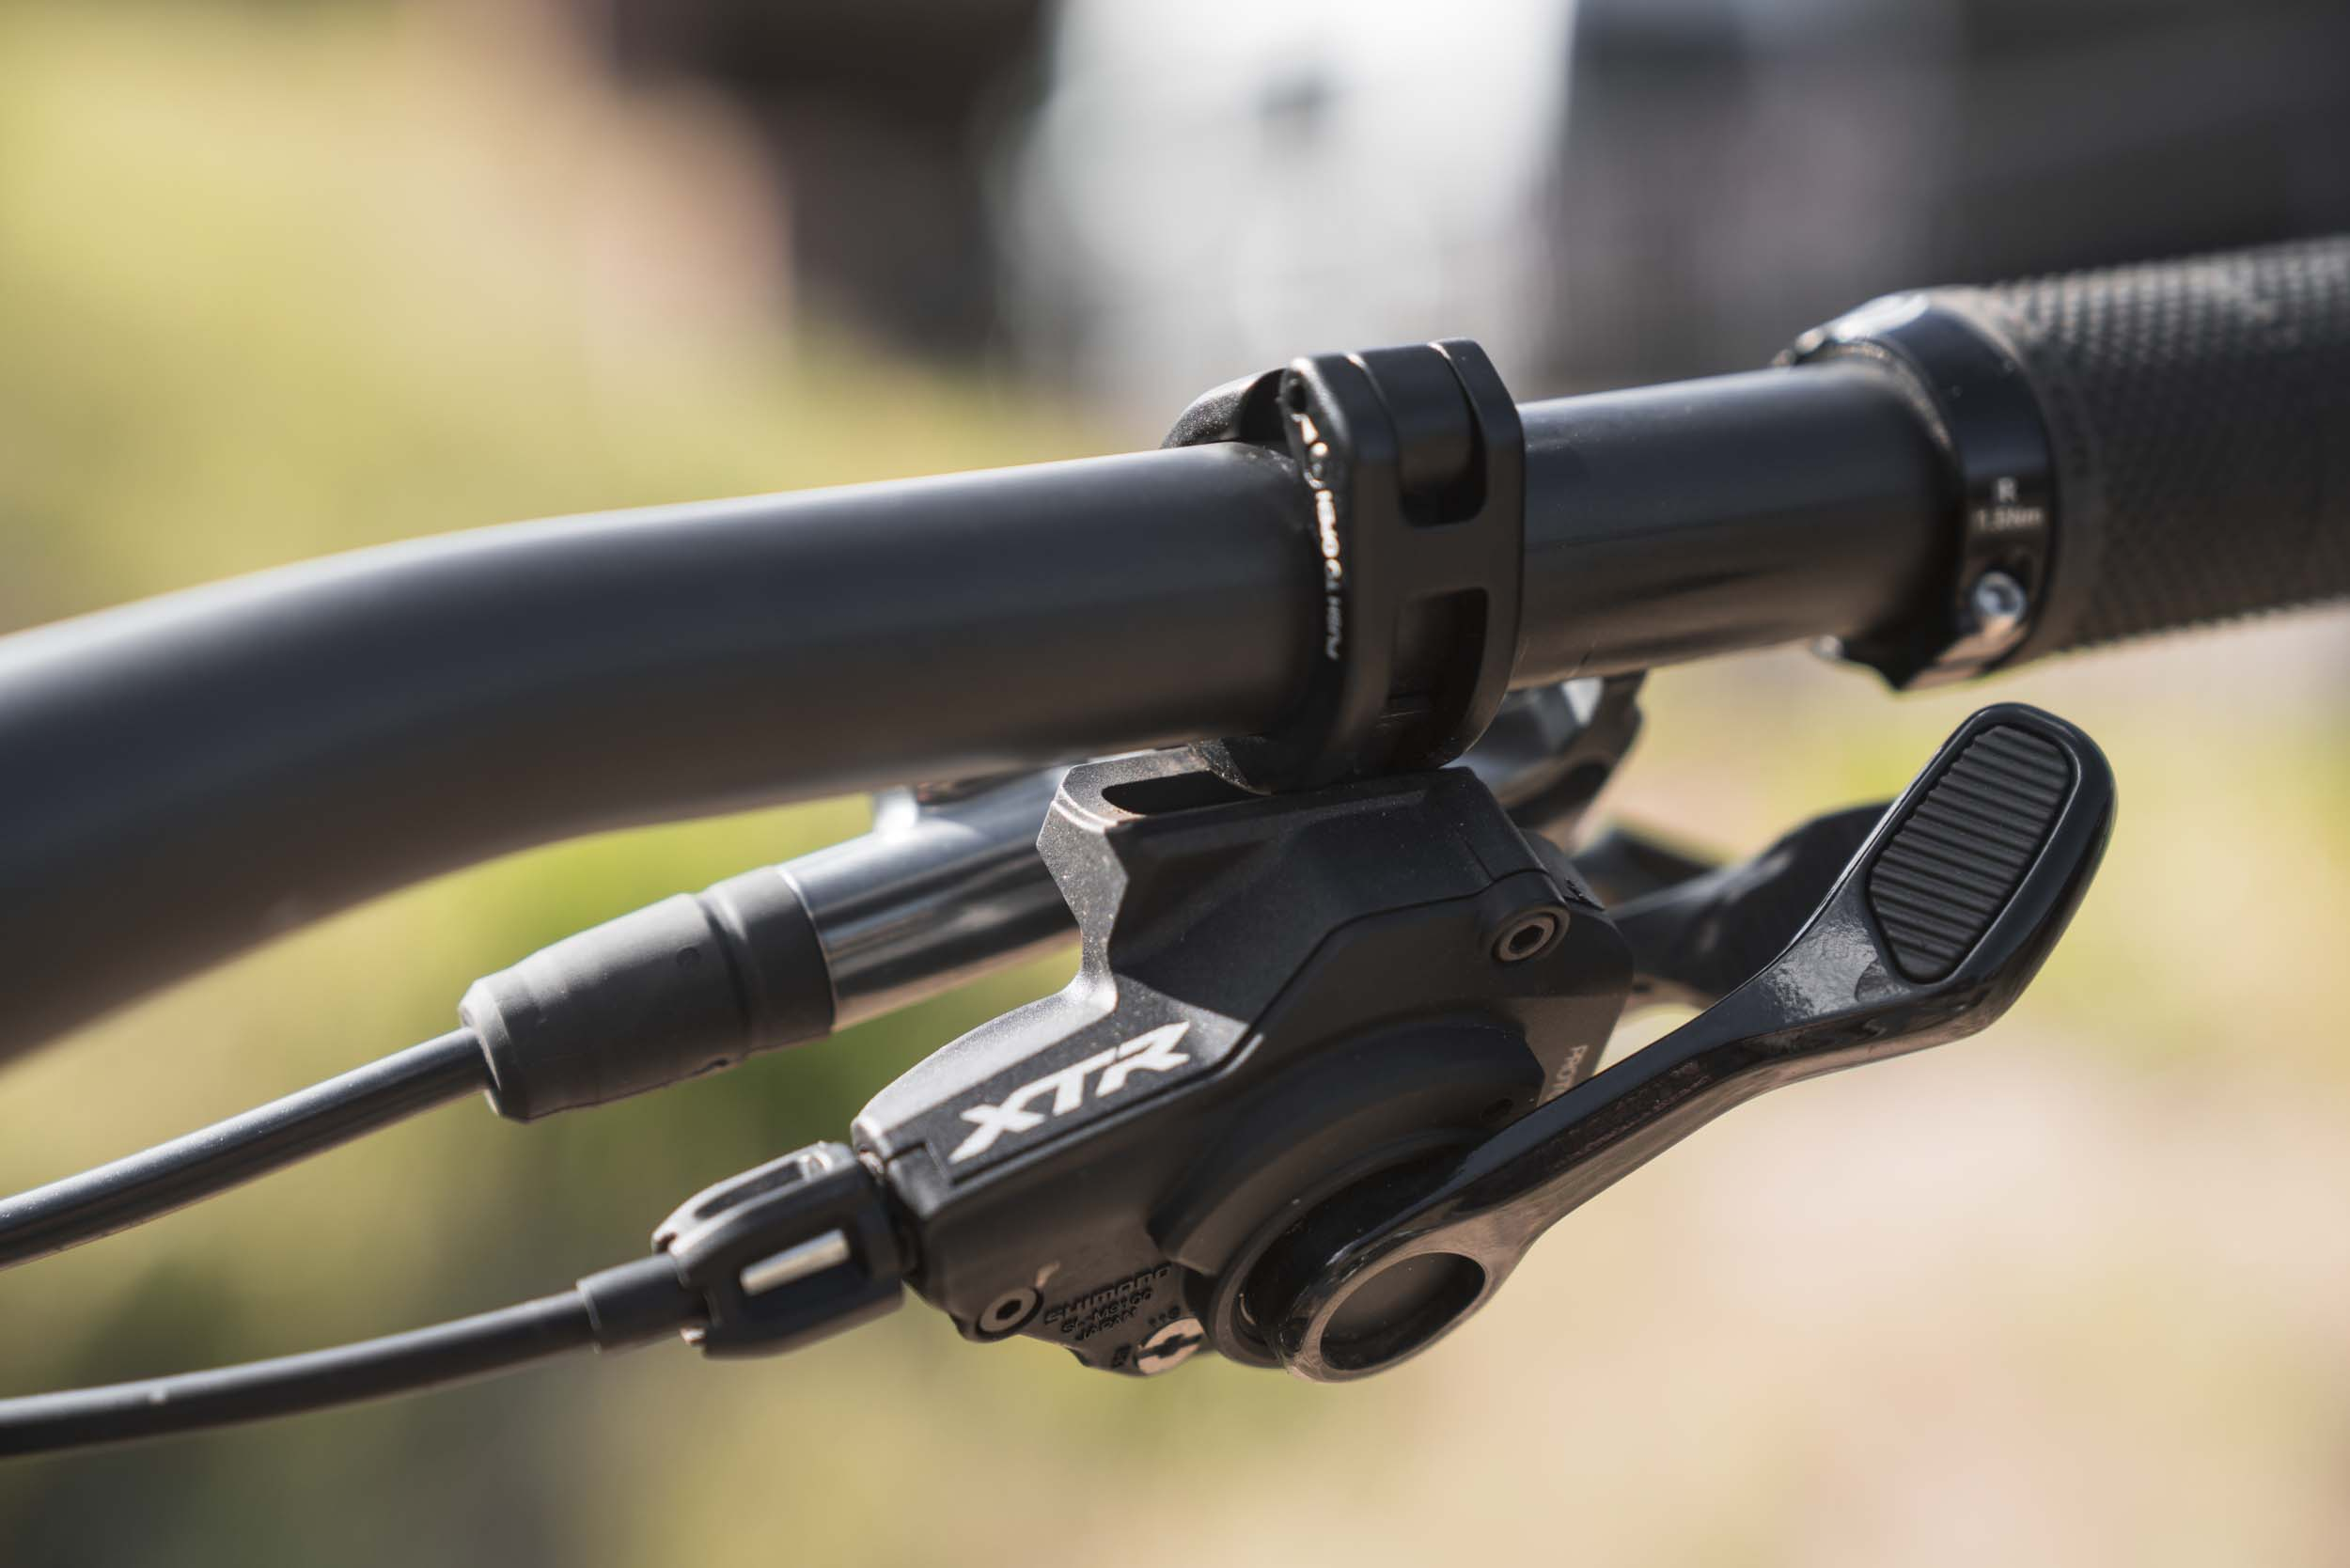 First Ride Review: Shimano XTR 9100 12-Speed Drivetrain  Is it